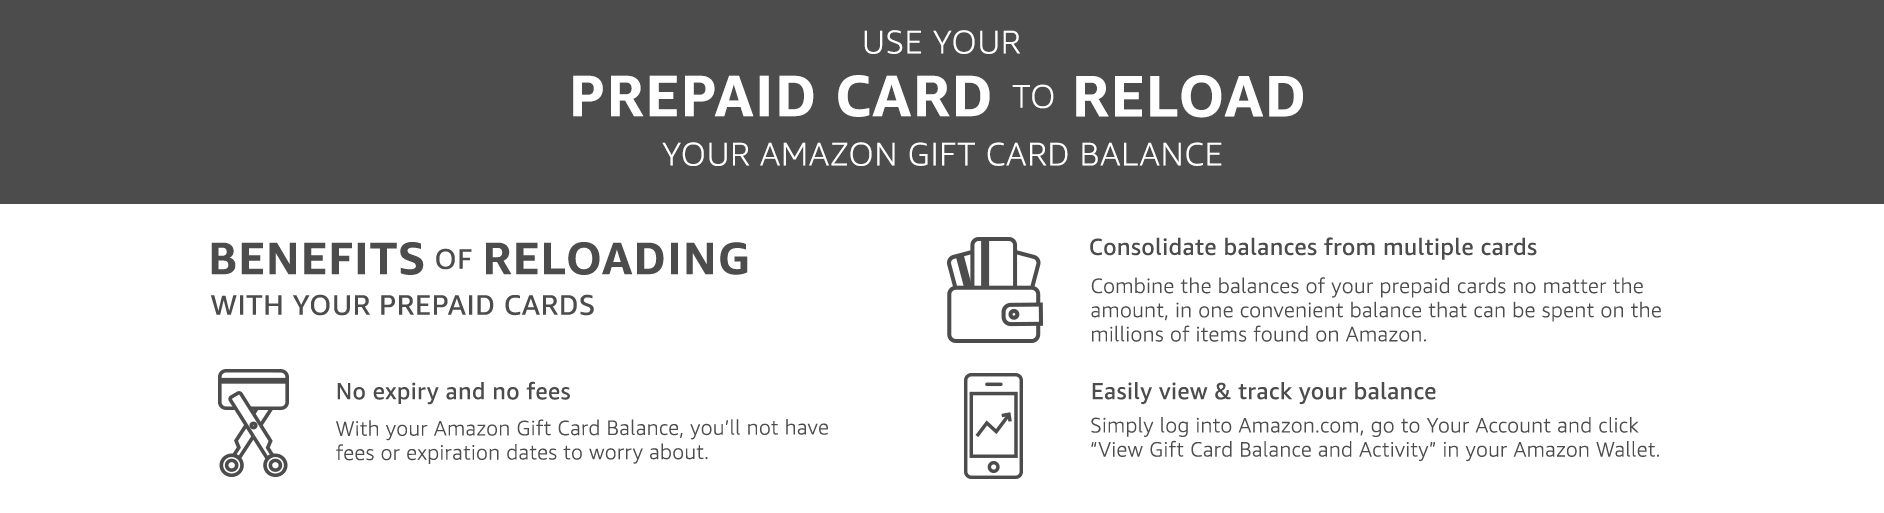 Amazon.com: Reload with Your Prepaid Card: Gift Cards